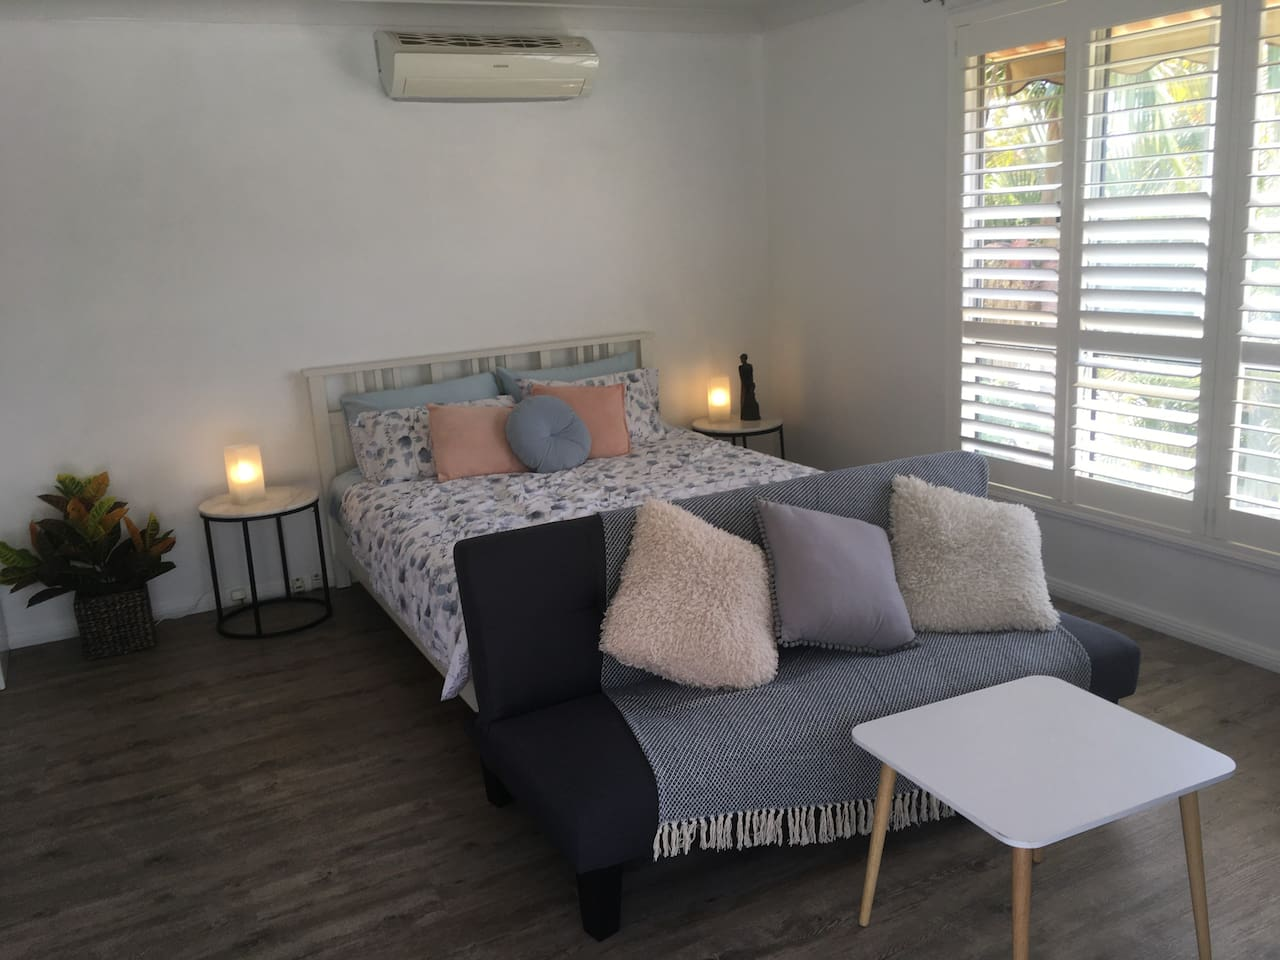 Cosy studio is perfect for 2 people. A child could sleep on the fold down futon.